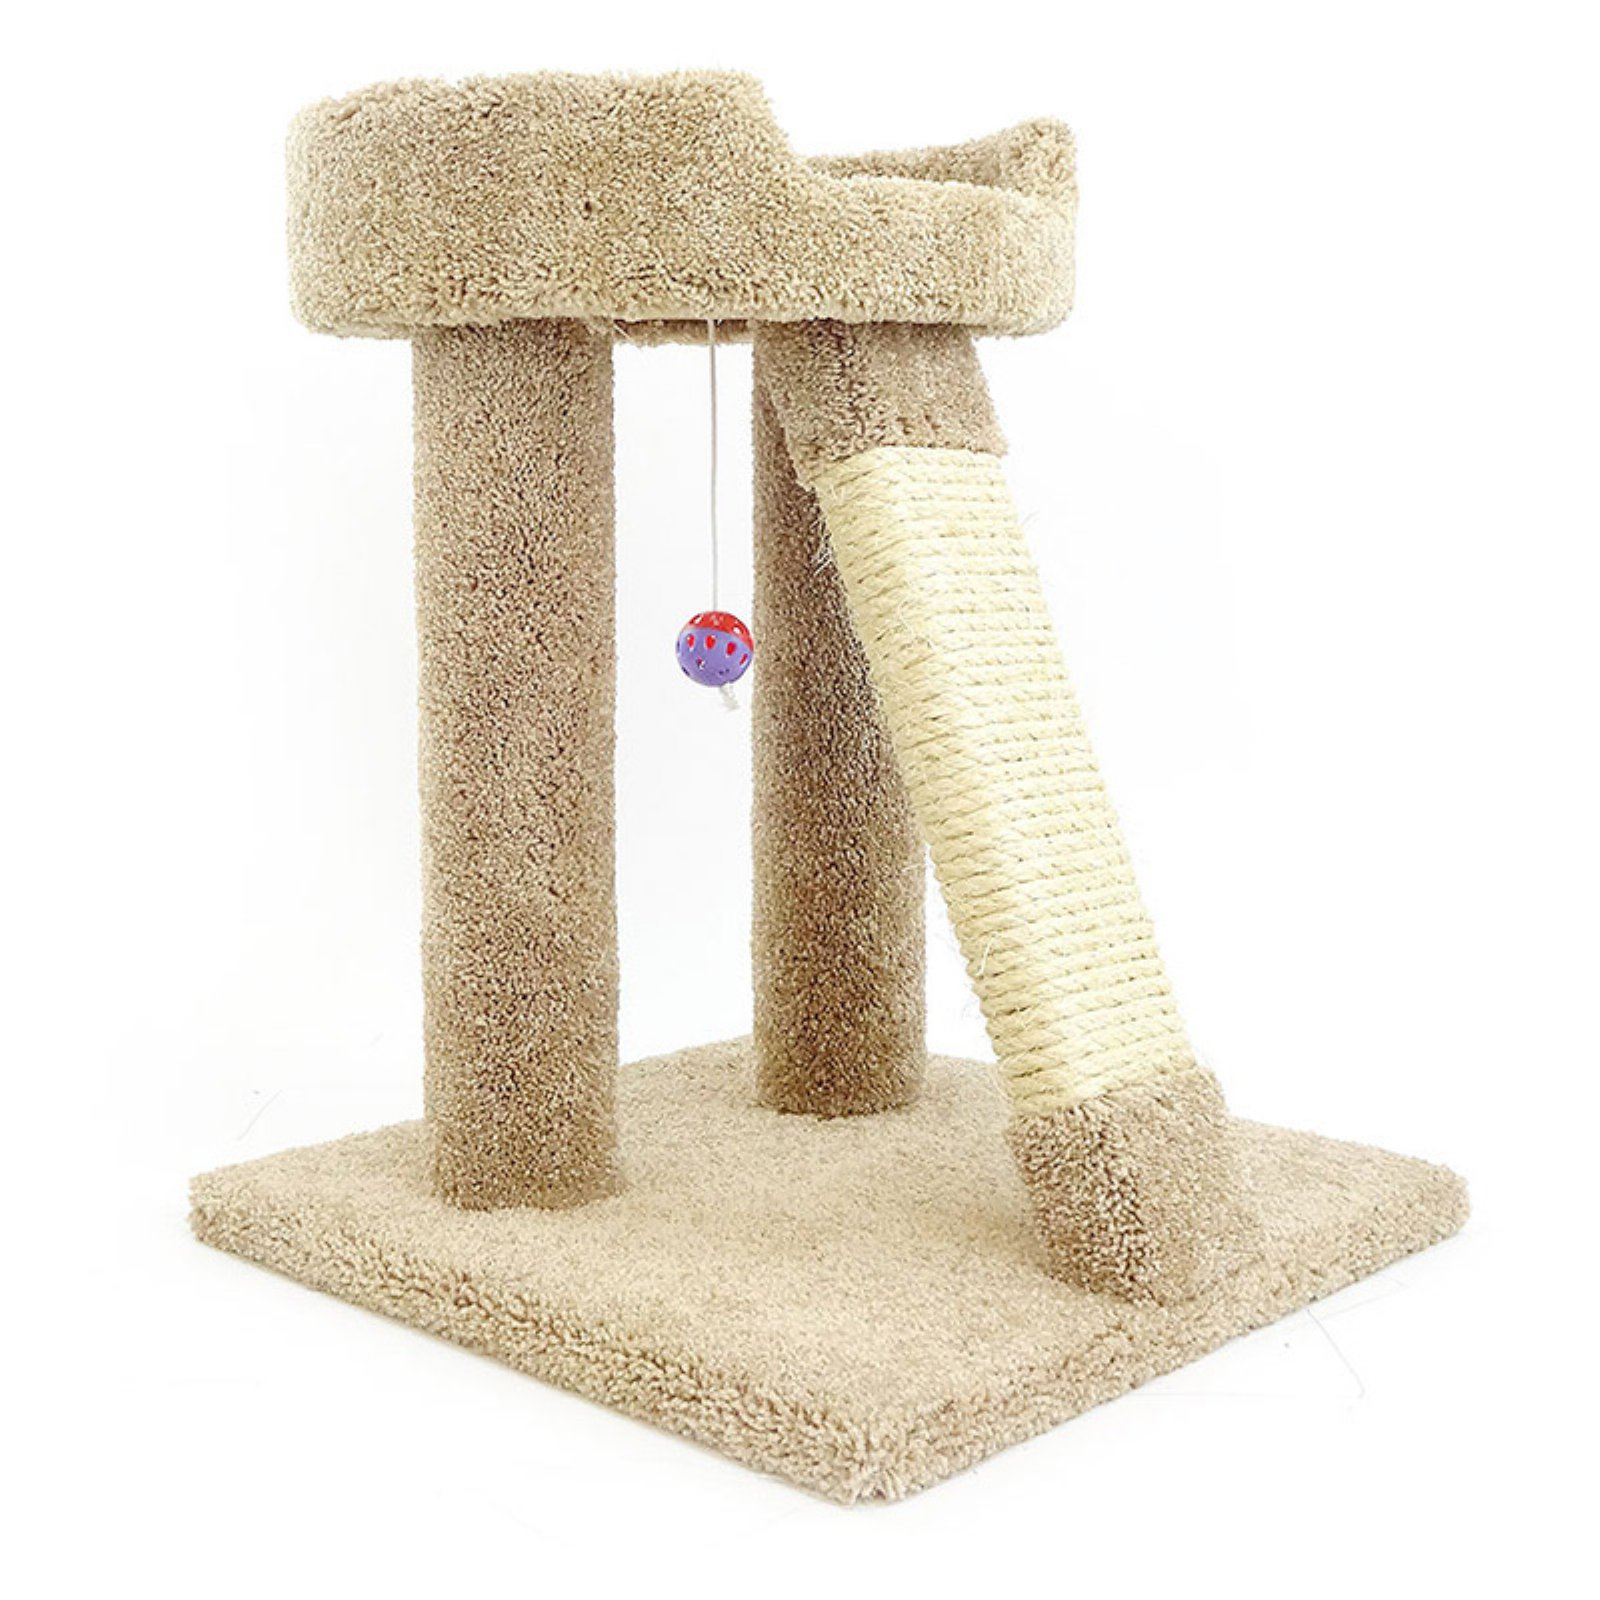 New Cat Condos 24 in. Elevated Cat Bed